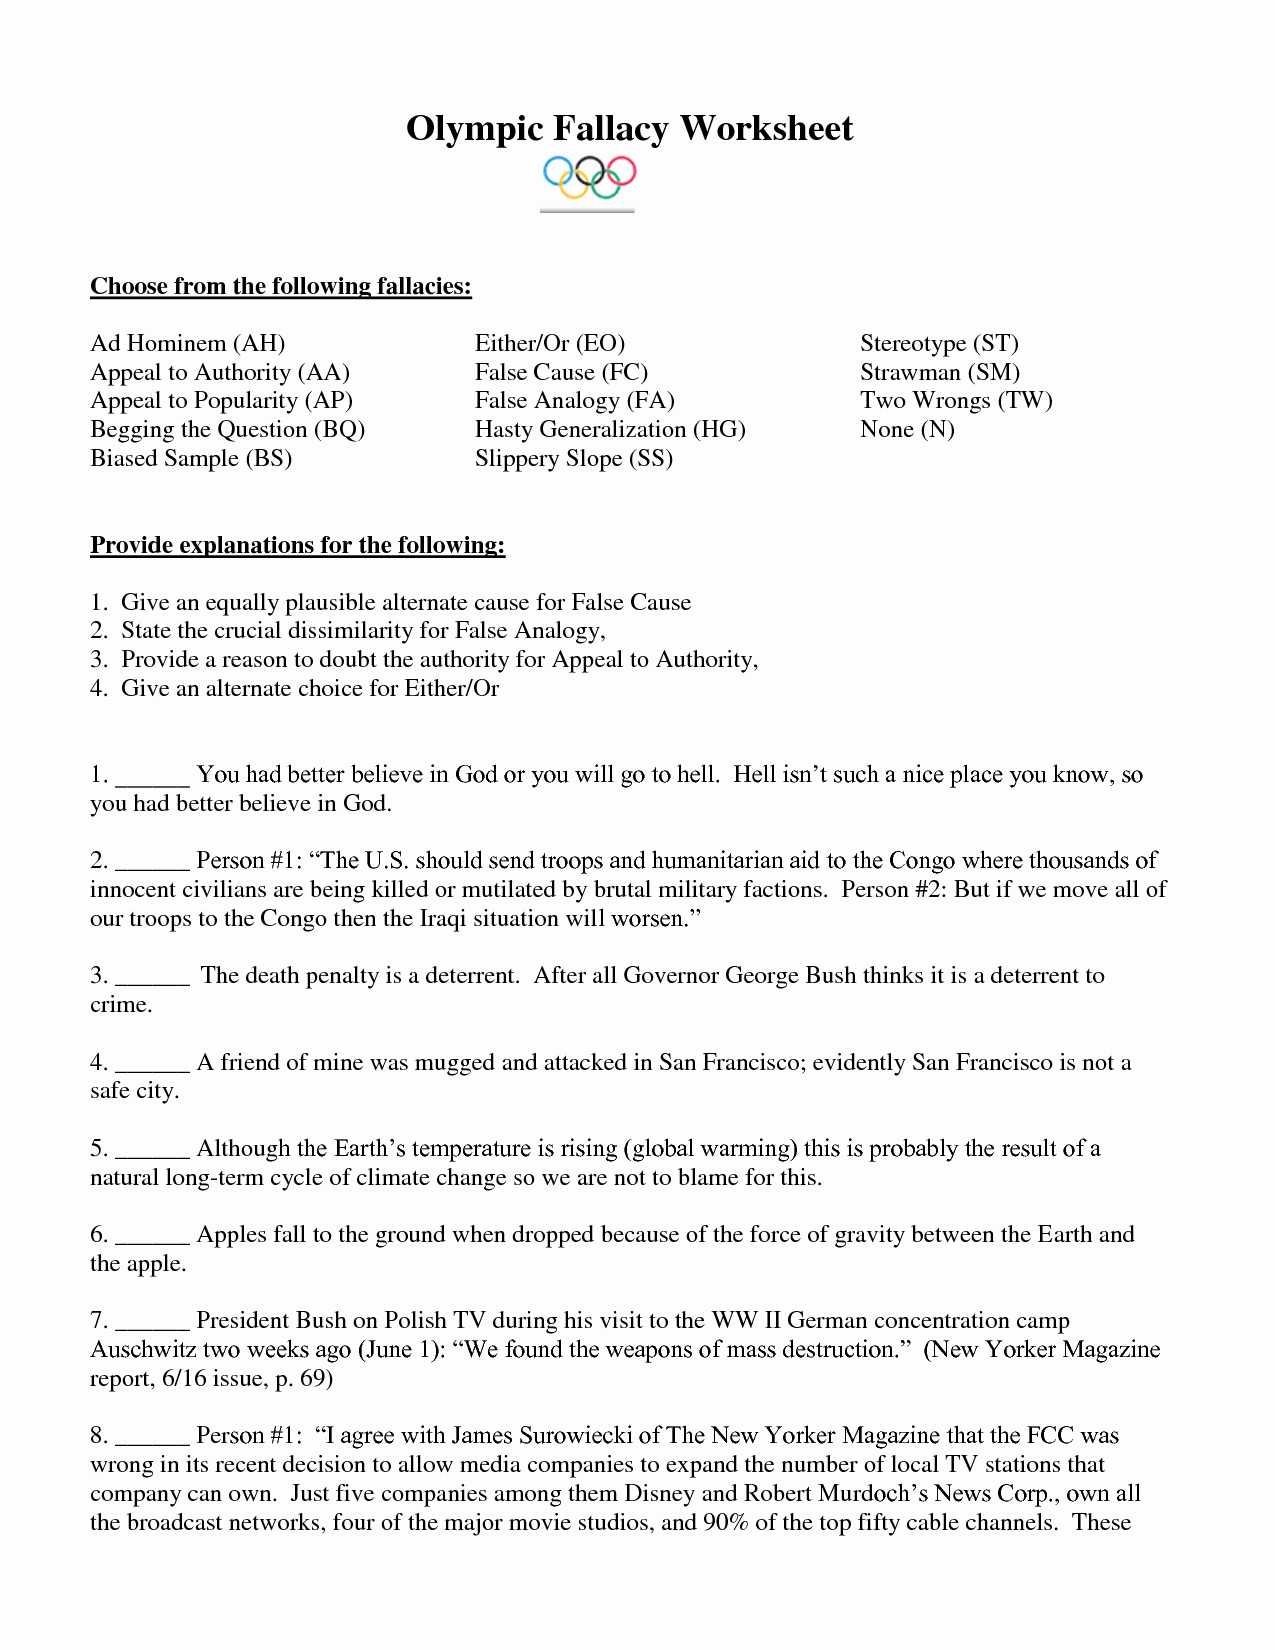 Logical Fallacies Worksheet with Answers Unique 15 Best Of Logical Fallacies Worksheet Cnu